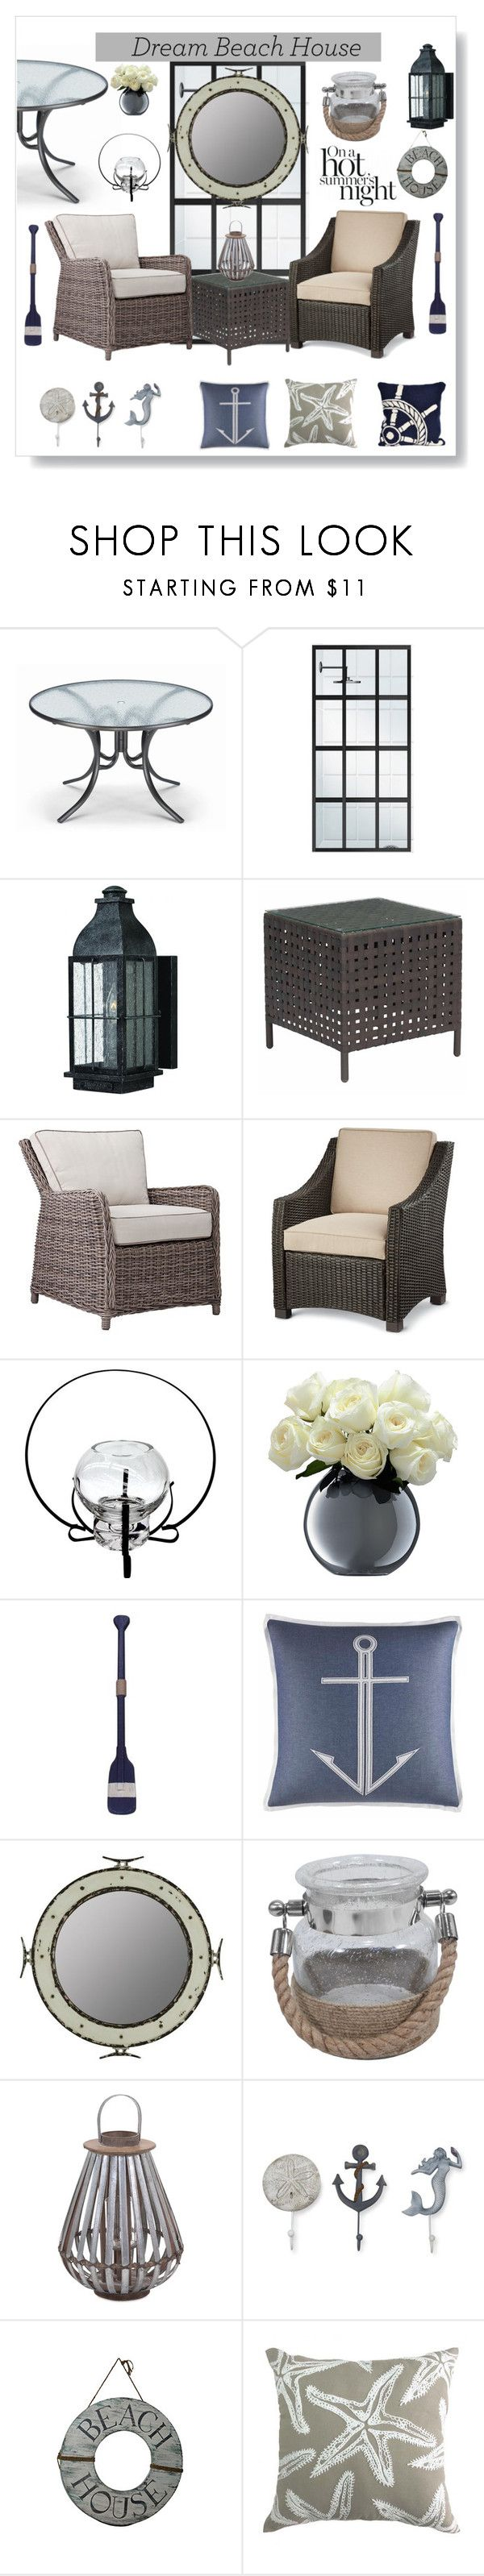 """""""Dream Beach House"""" by maryfromnewengland ❤ liked on Polyvore featuring interior, interiors, interior design, home, home decor, interior decorating, Telescope Casual, Hinkley Lighting, Zuo and Threshold"""